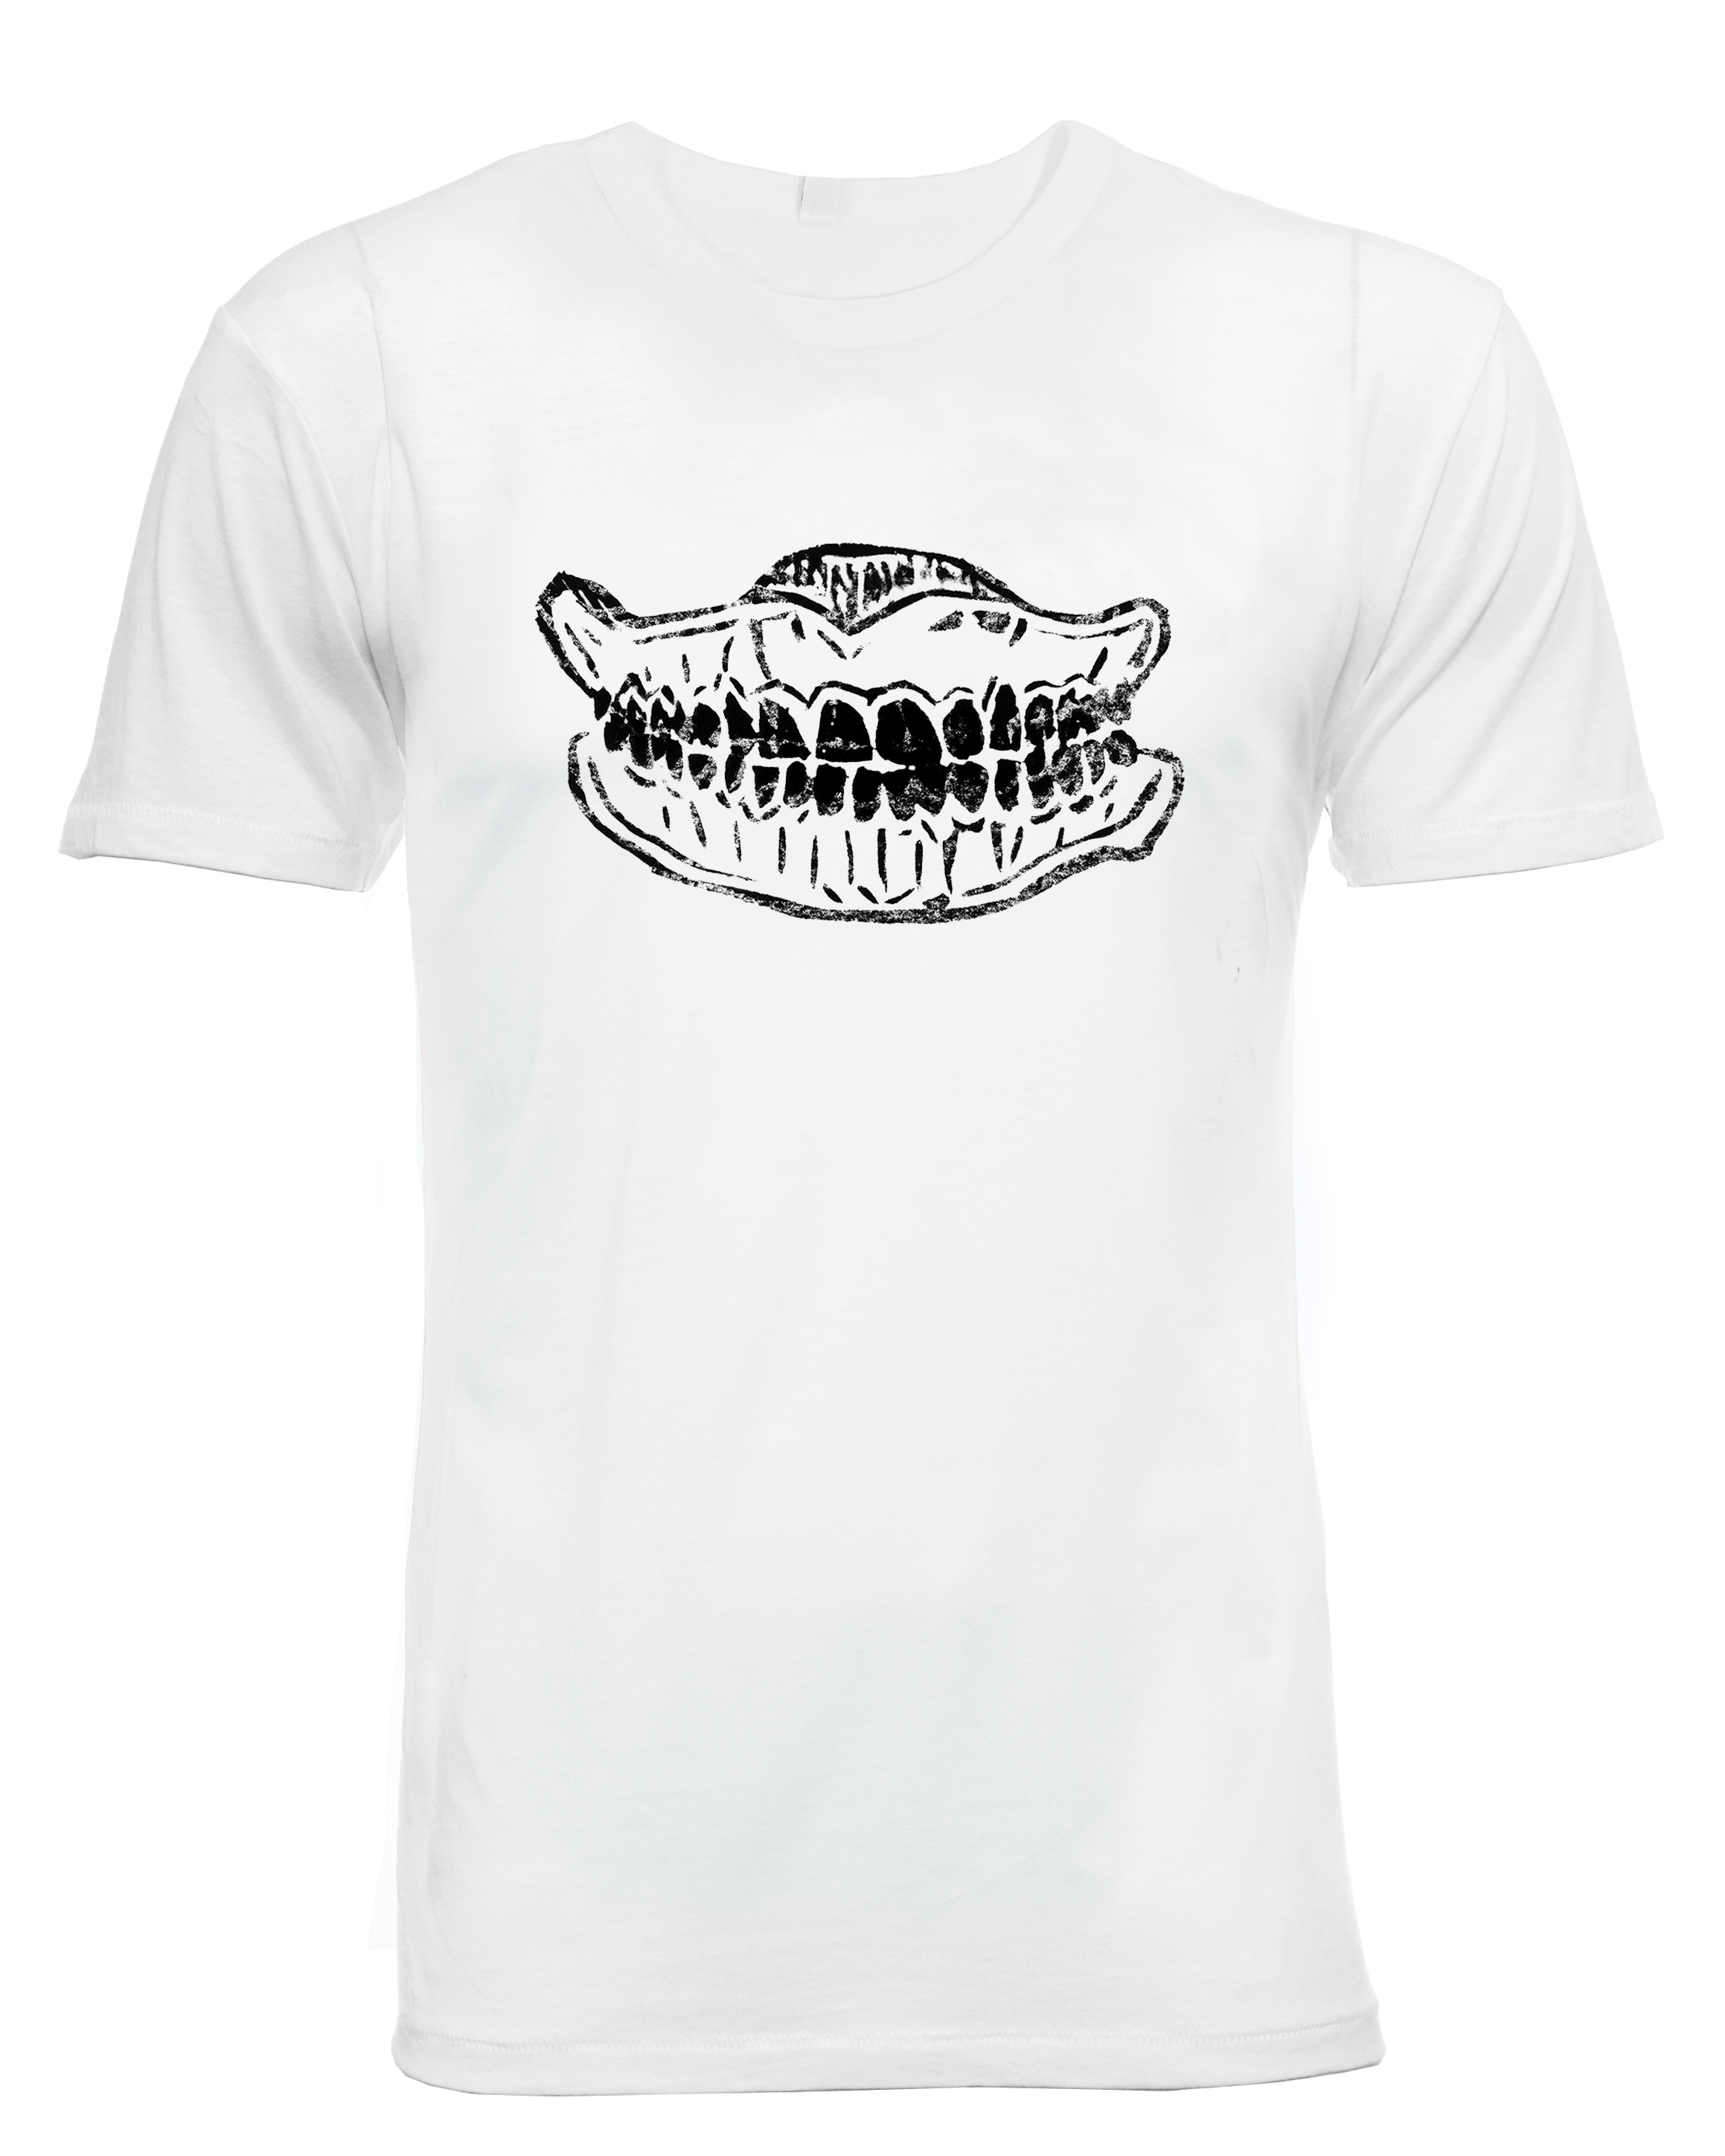 Tooth T-shirt with 90s grunge design. A white organic cotton mens graphic tee